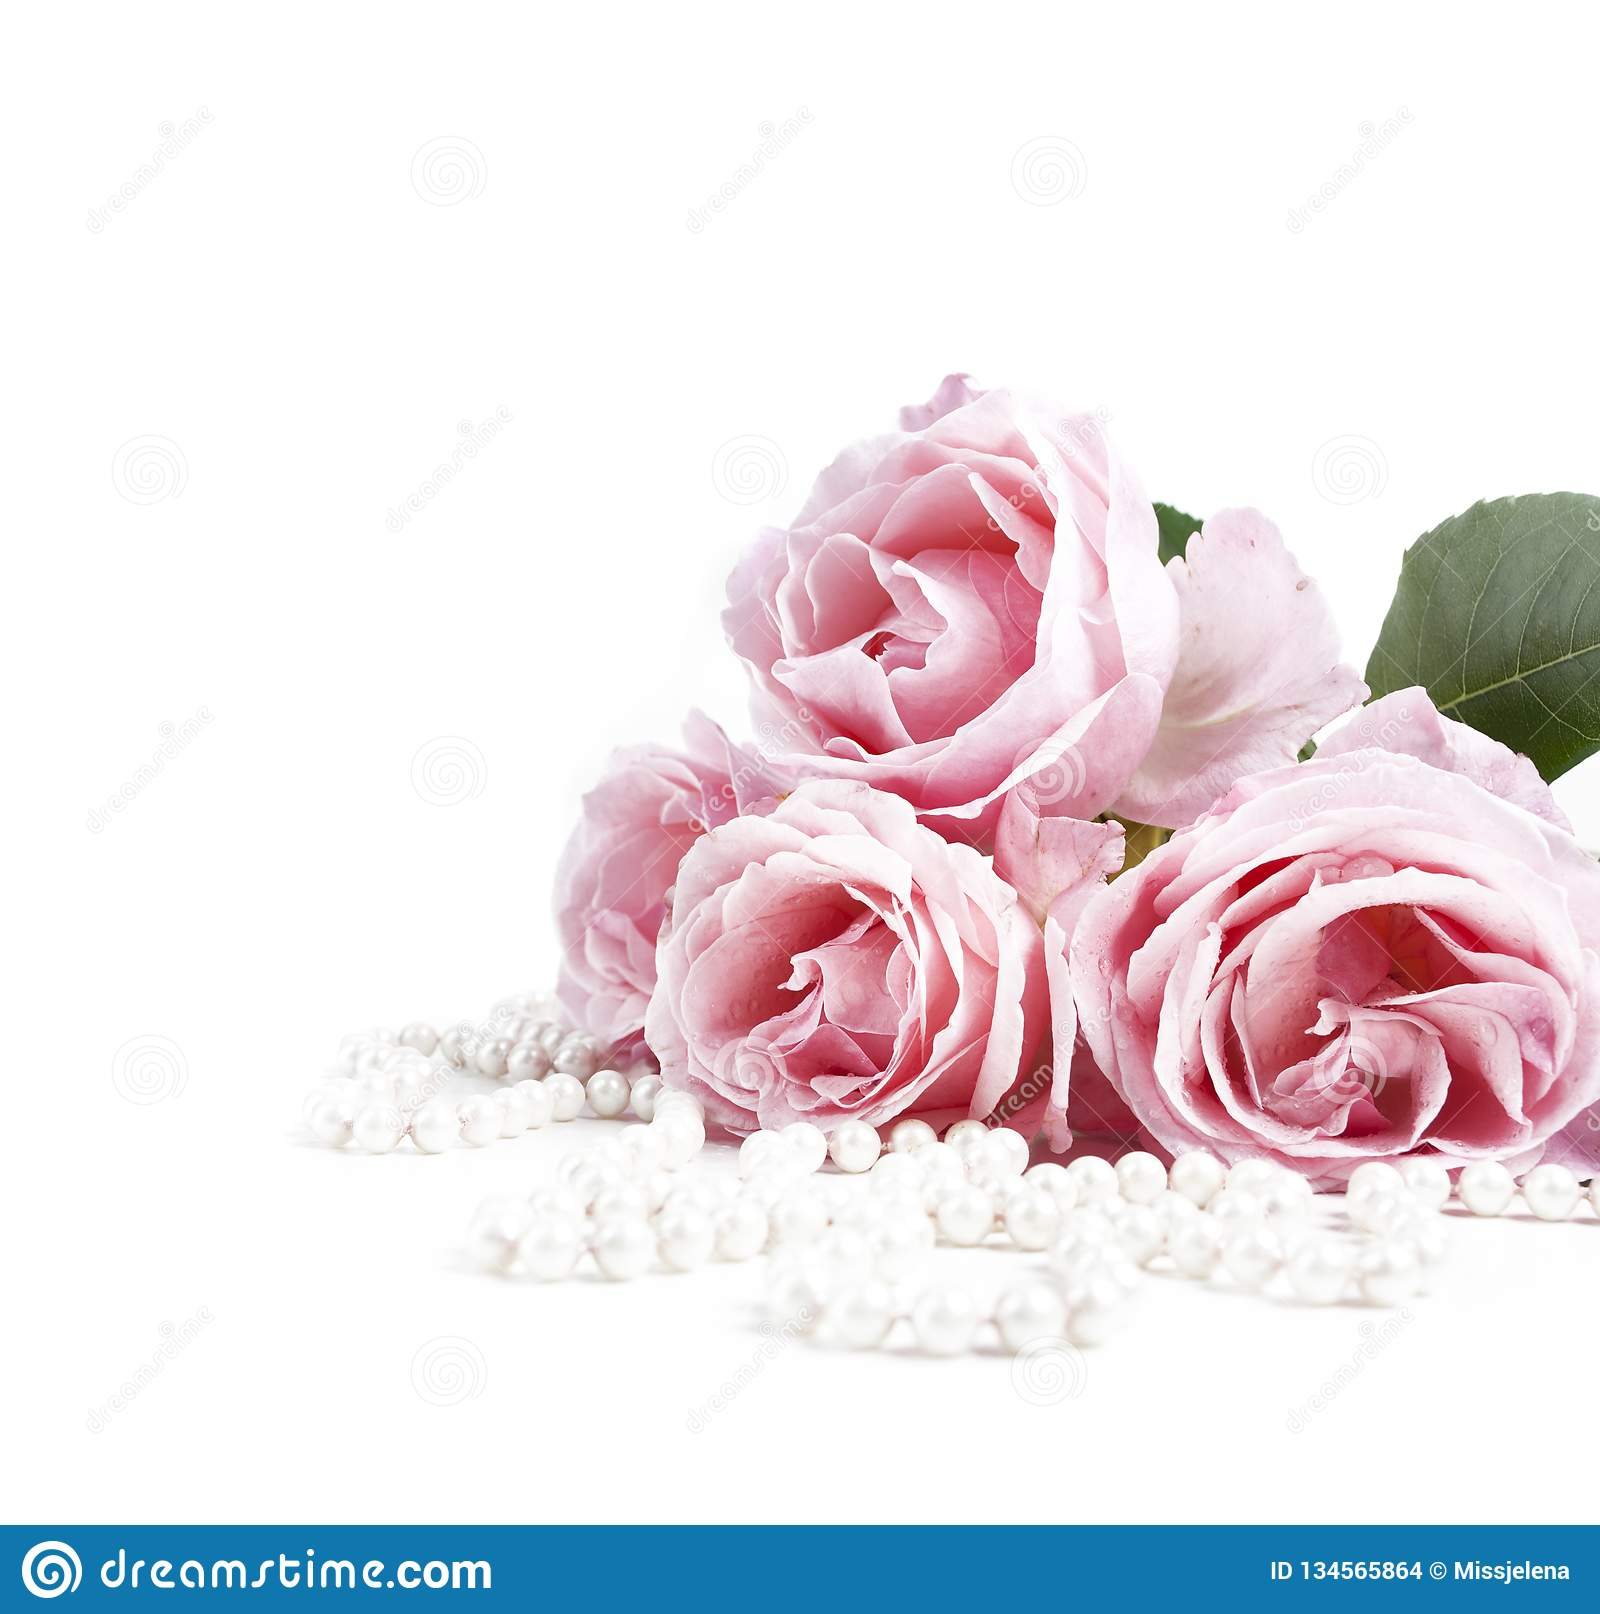 Beautiful Pastel Pink Roses Bunch And Elegant Bridal Pearls Isolated Over White Background Stock Photo Image Of Feminine Femininity 134565864